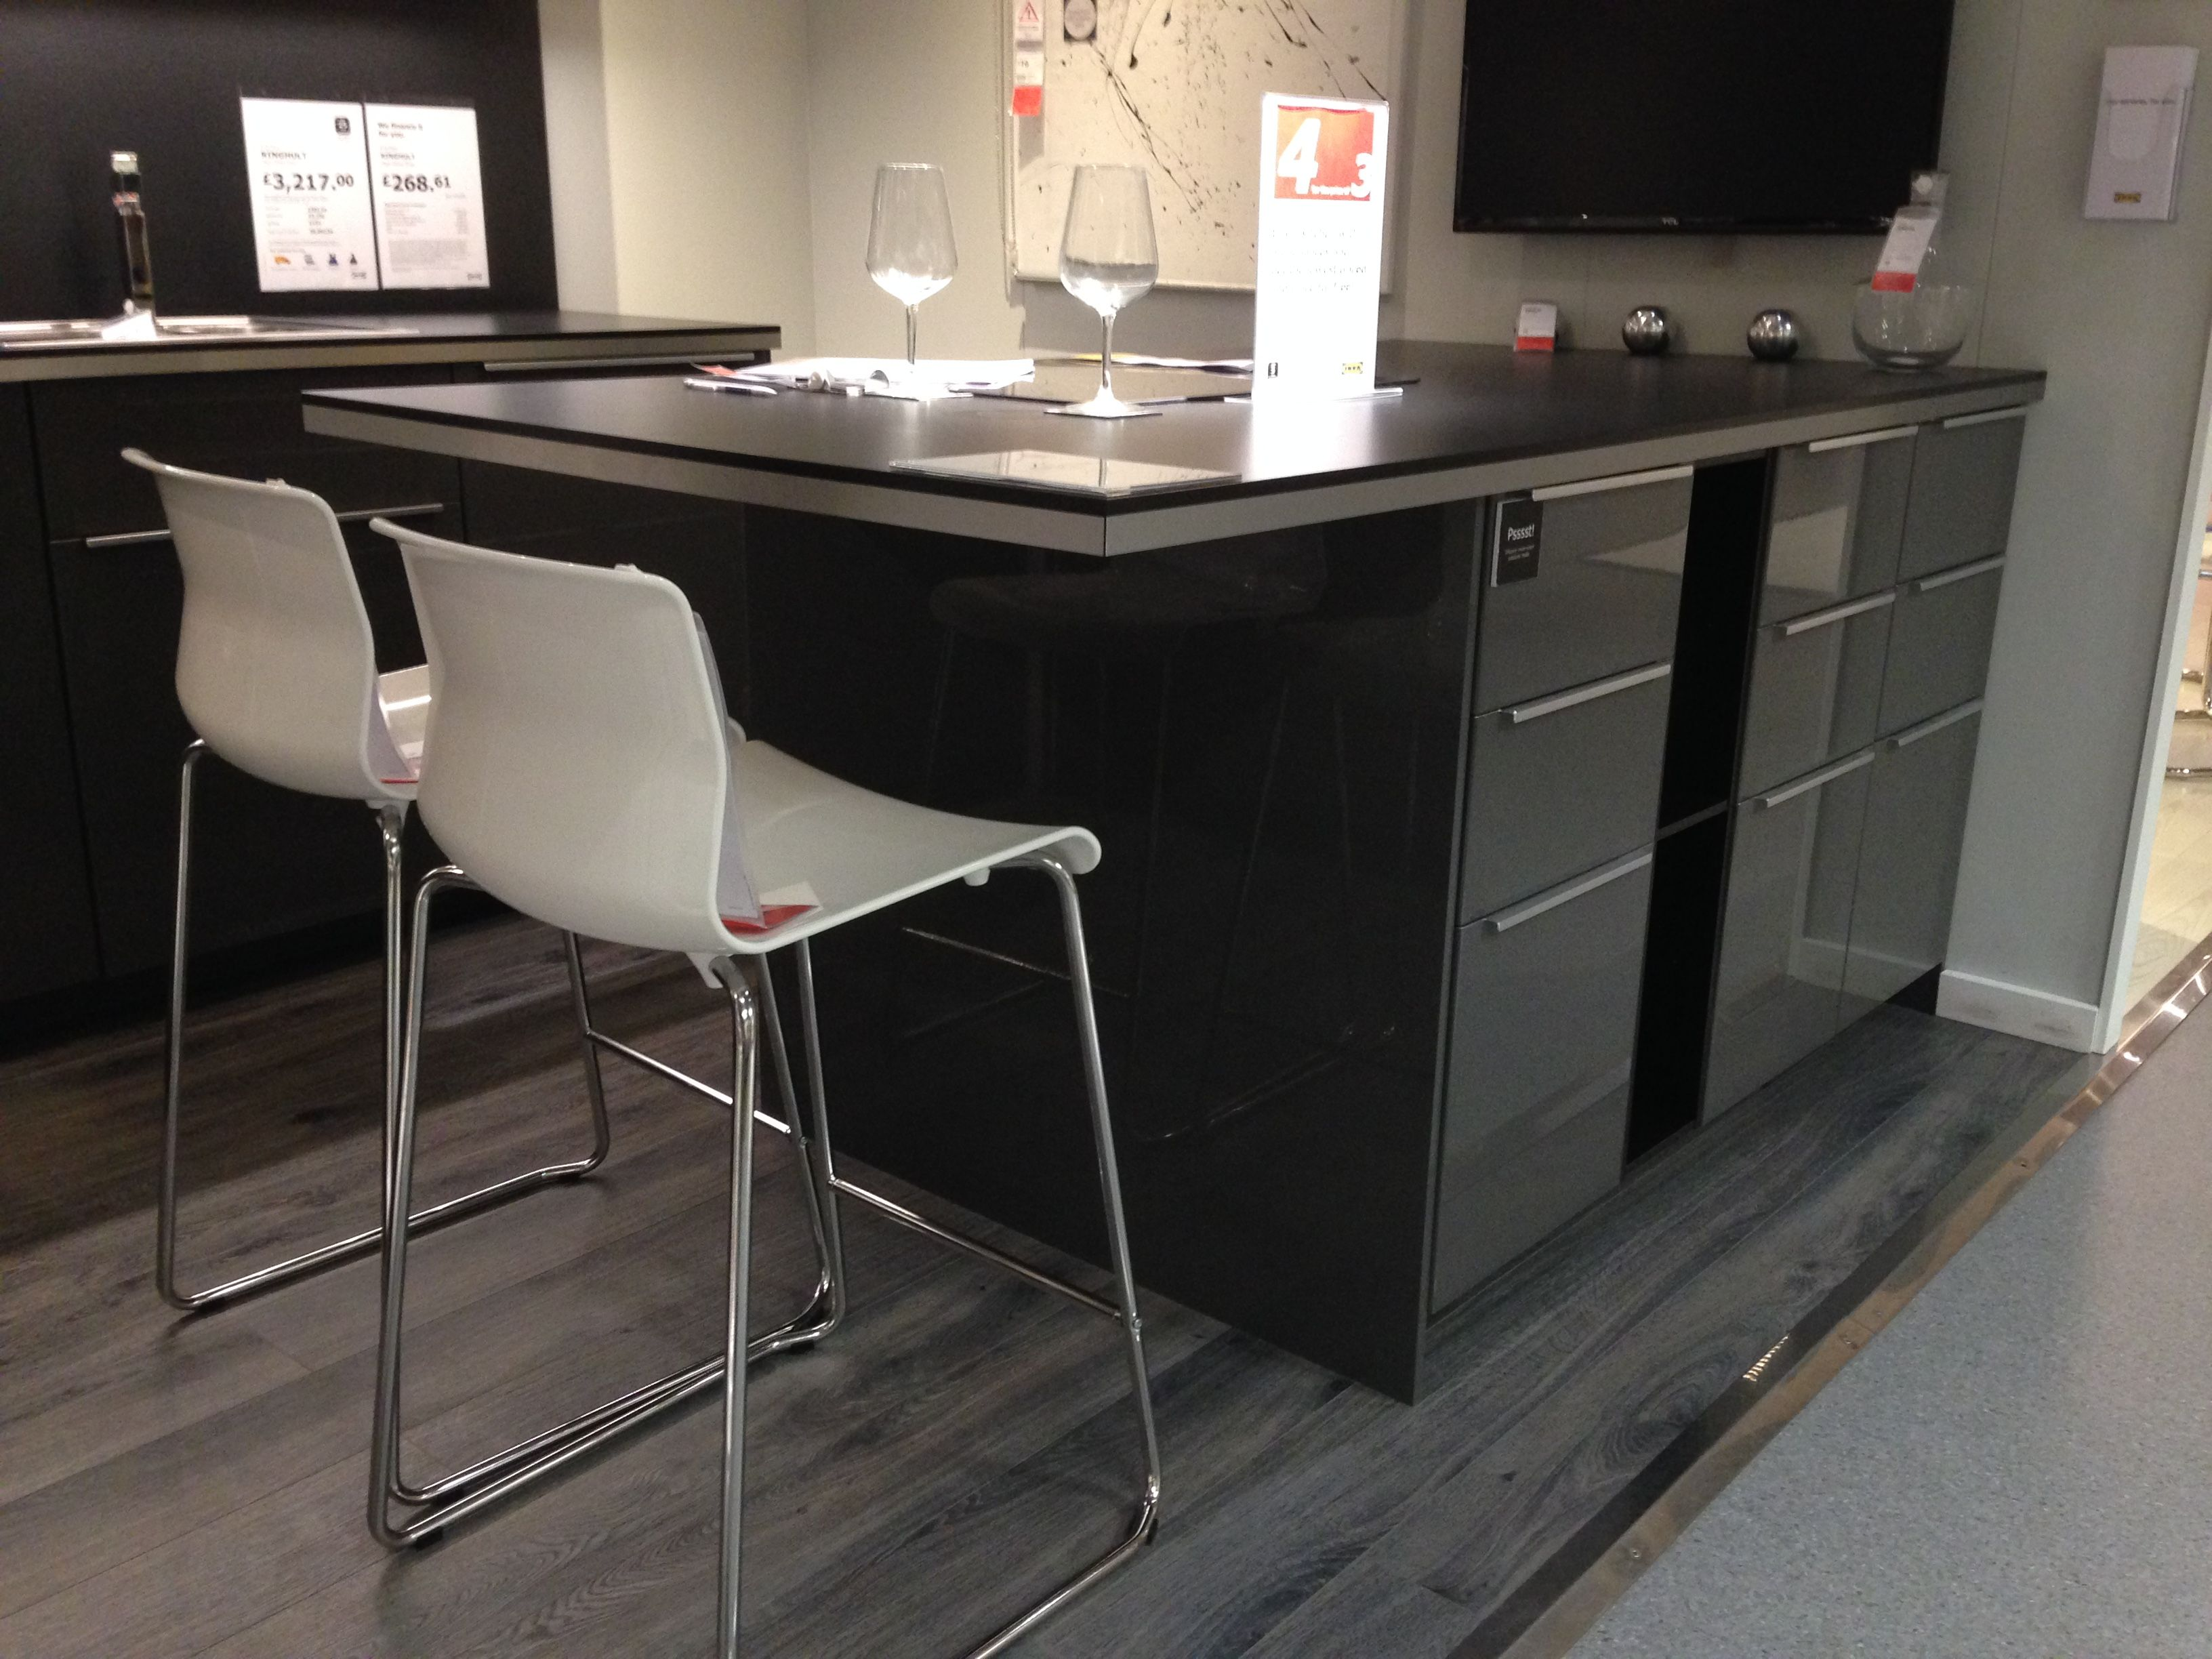 Ikea badezimmerlampe ~ Ringhult kitchen ikea grey gloss with breakfast bar. hadt thought